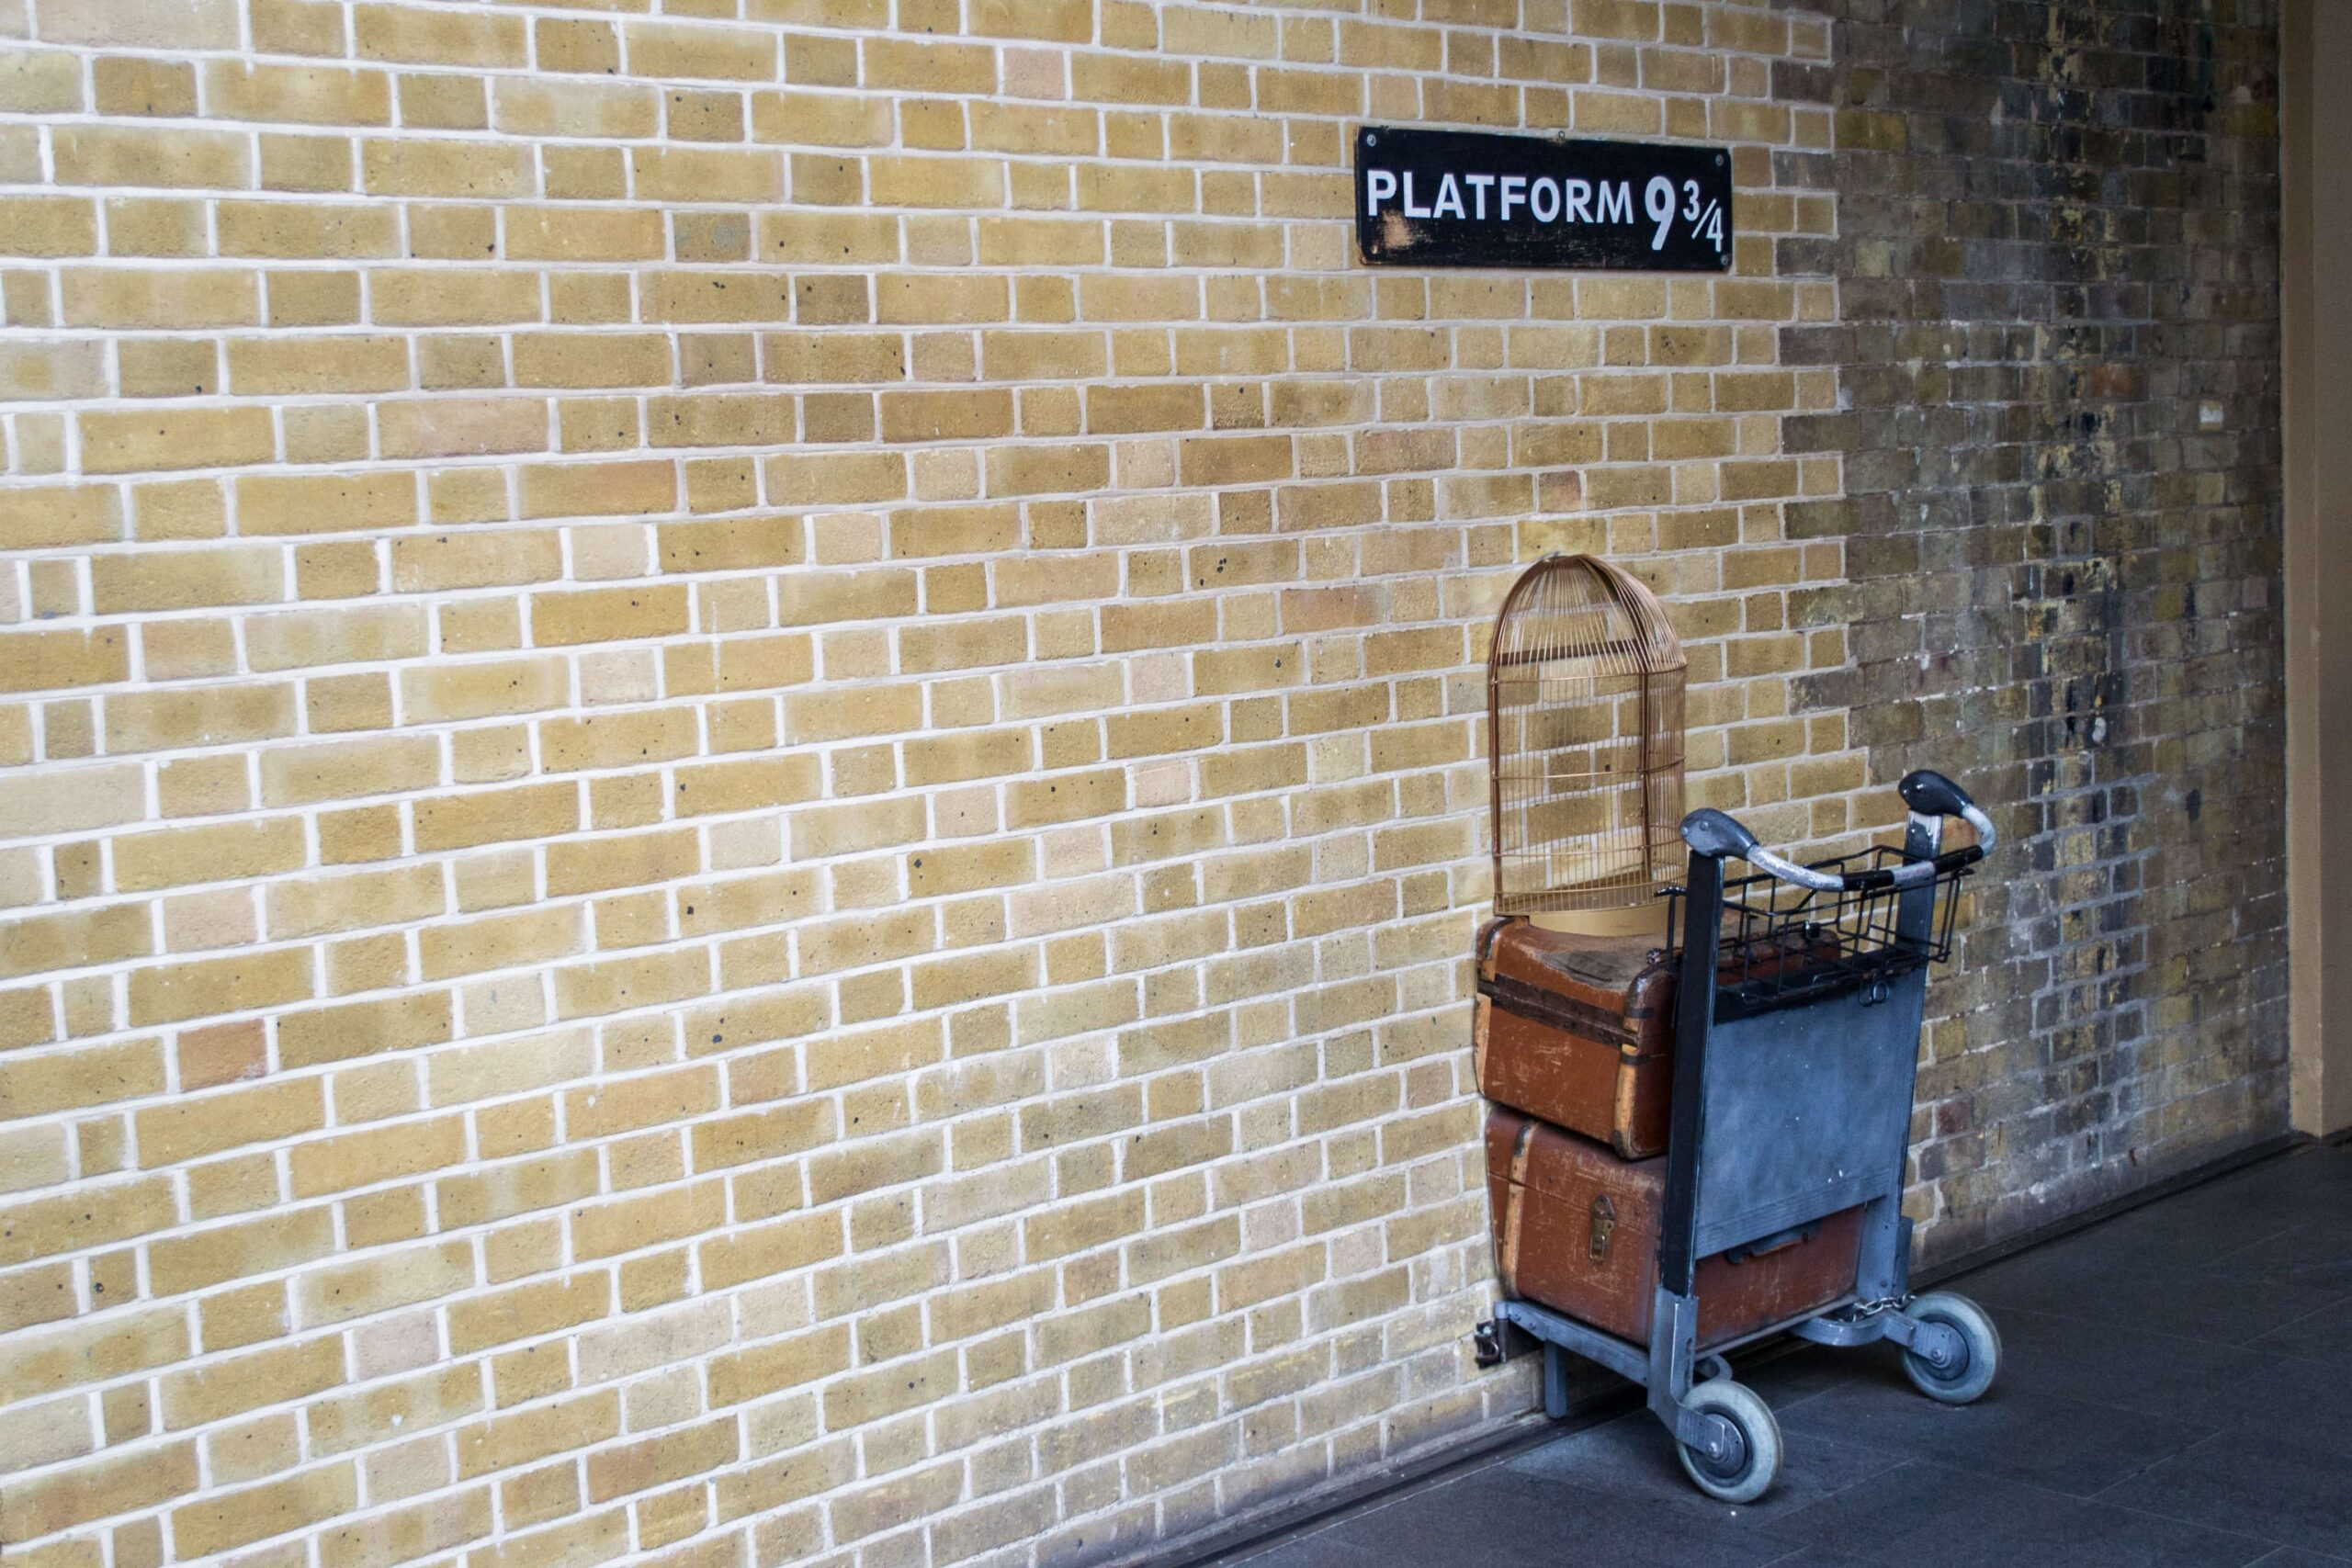 Kings Cross Station Platform 9 3⁄4